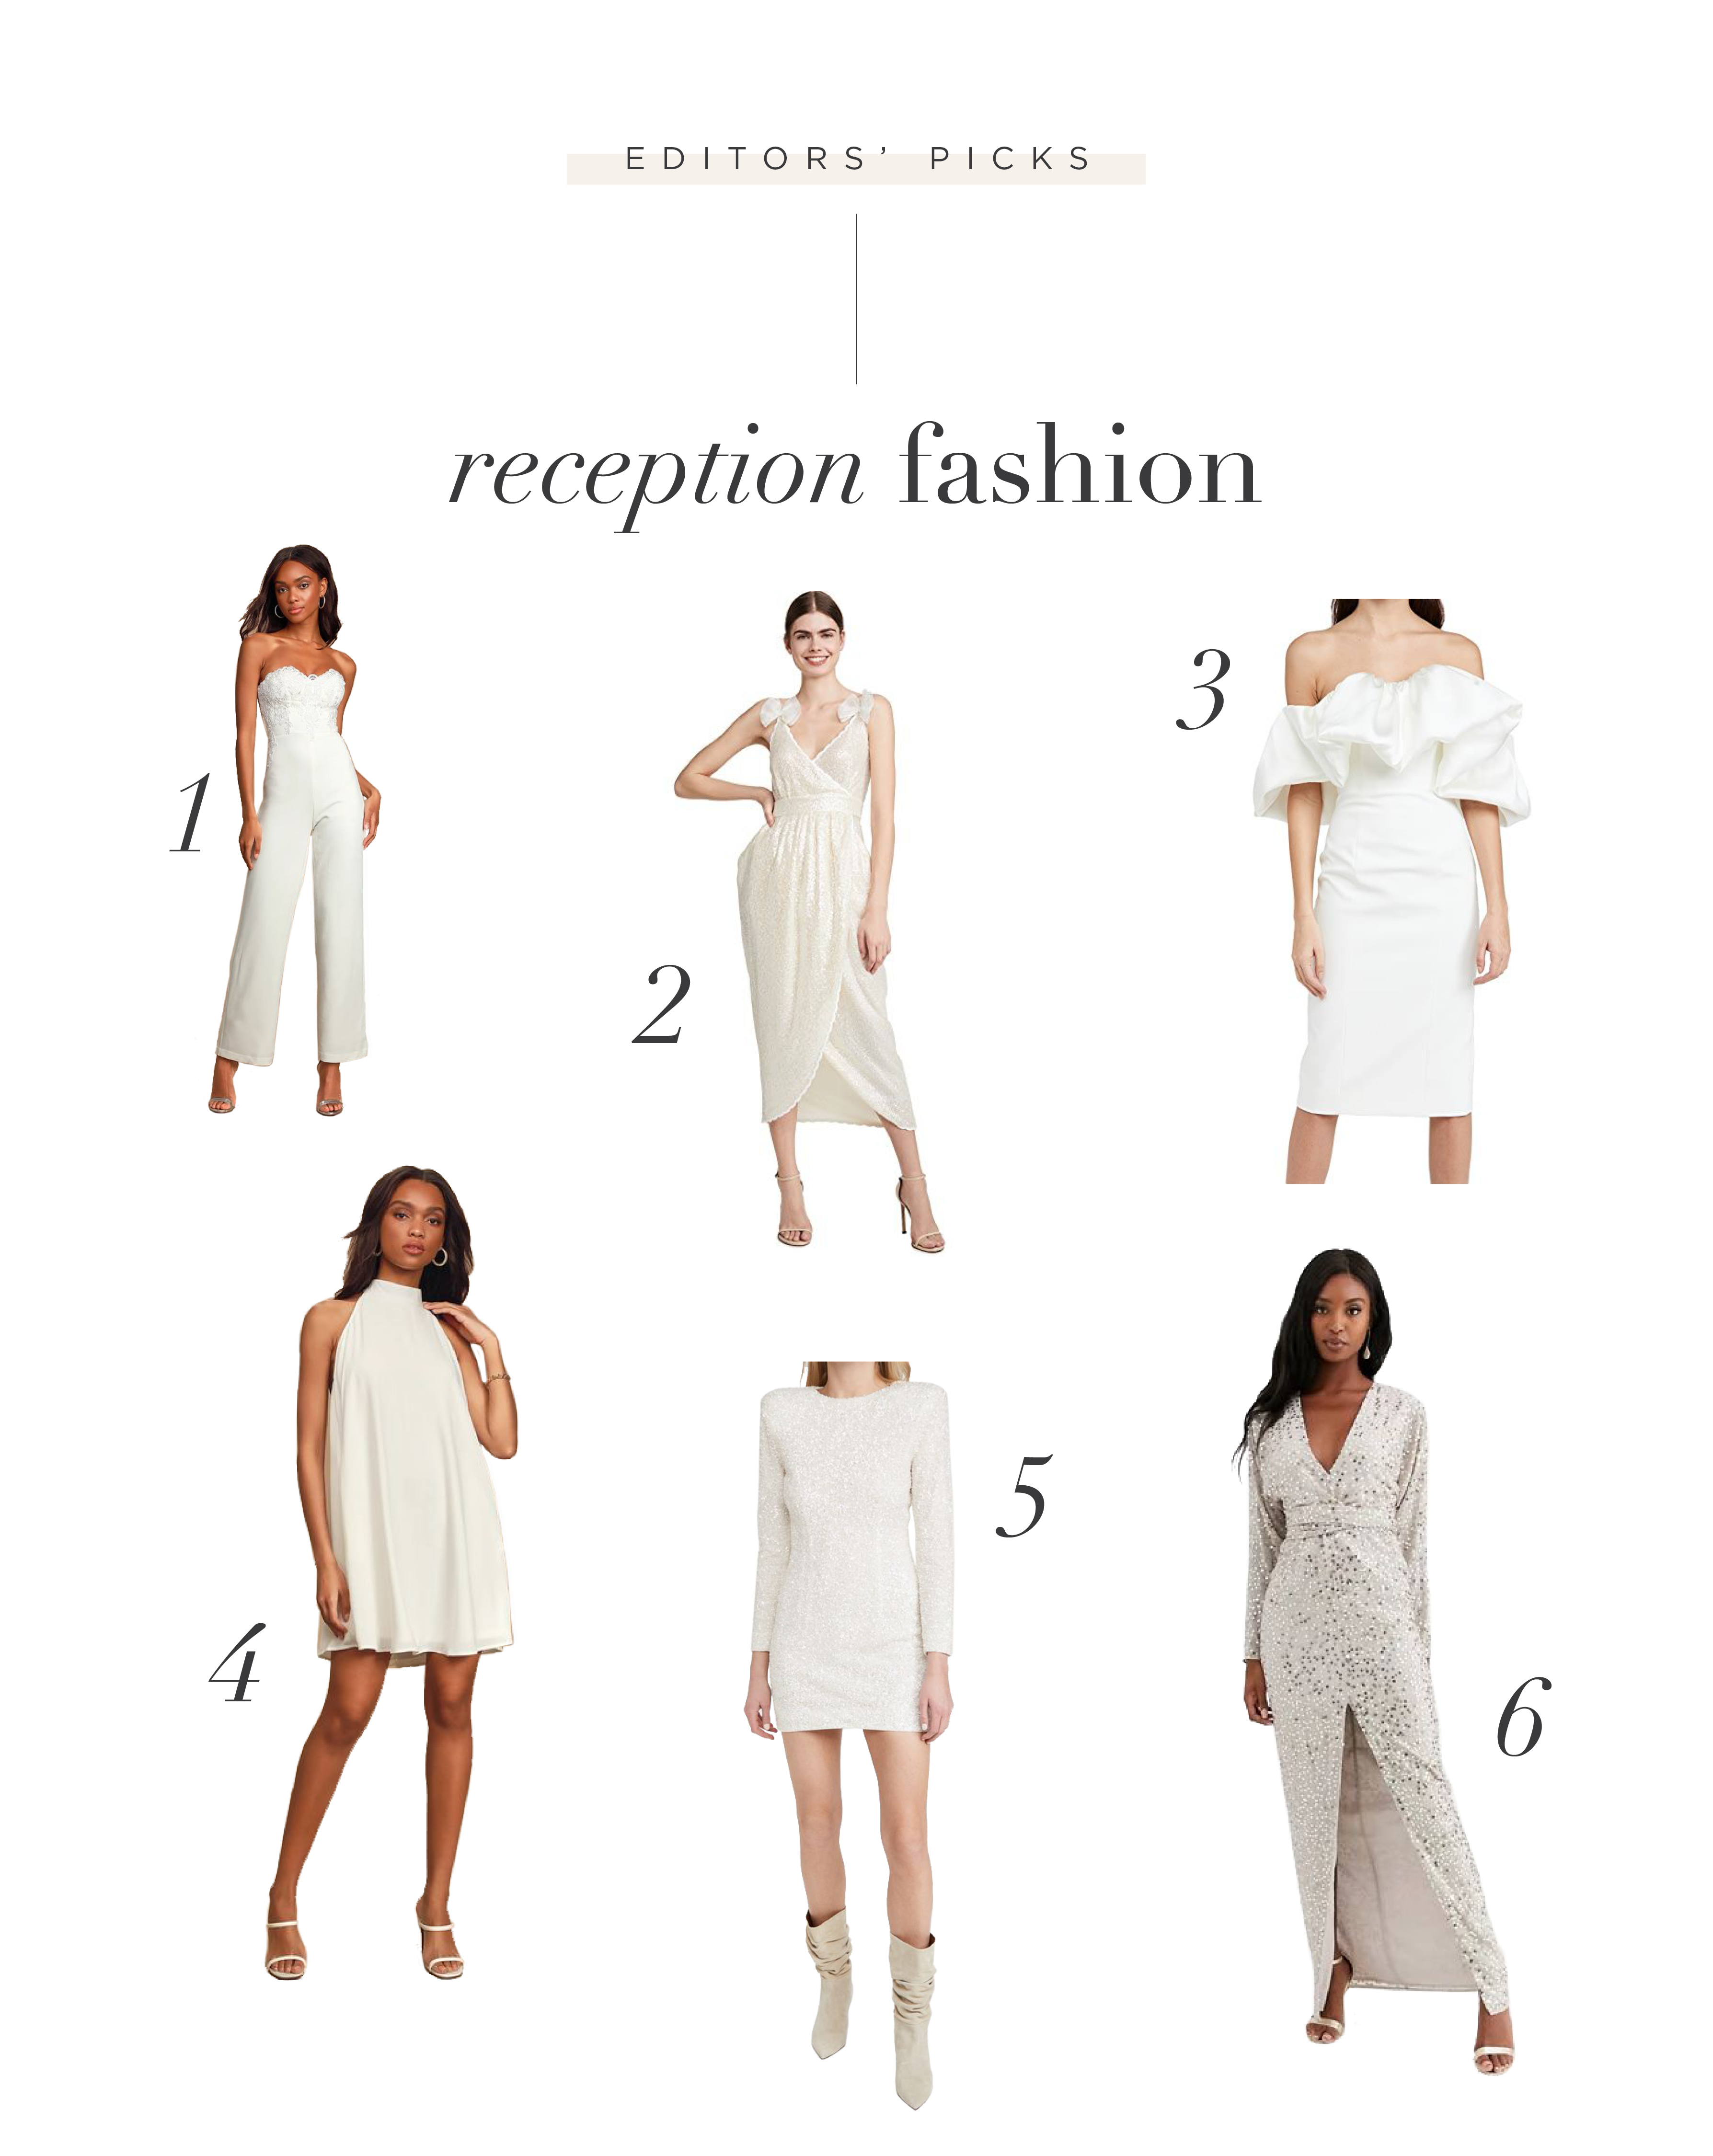 Choosing the Perfect Wedding Reception Fashion + Exit Attire